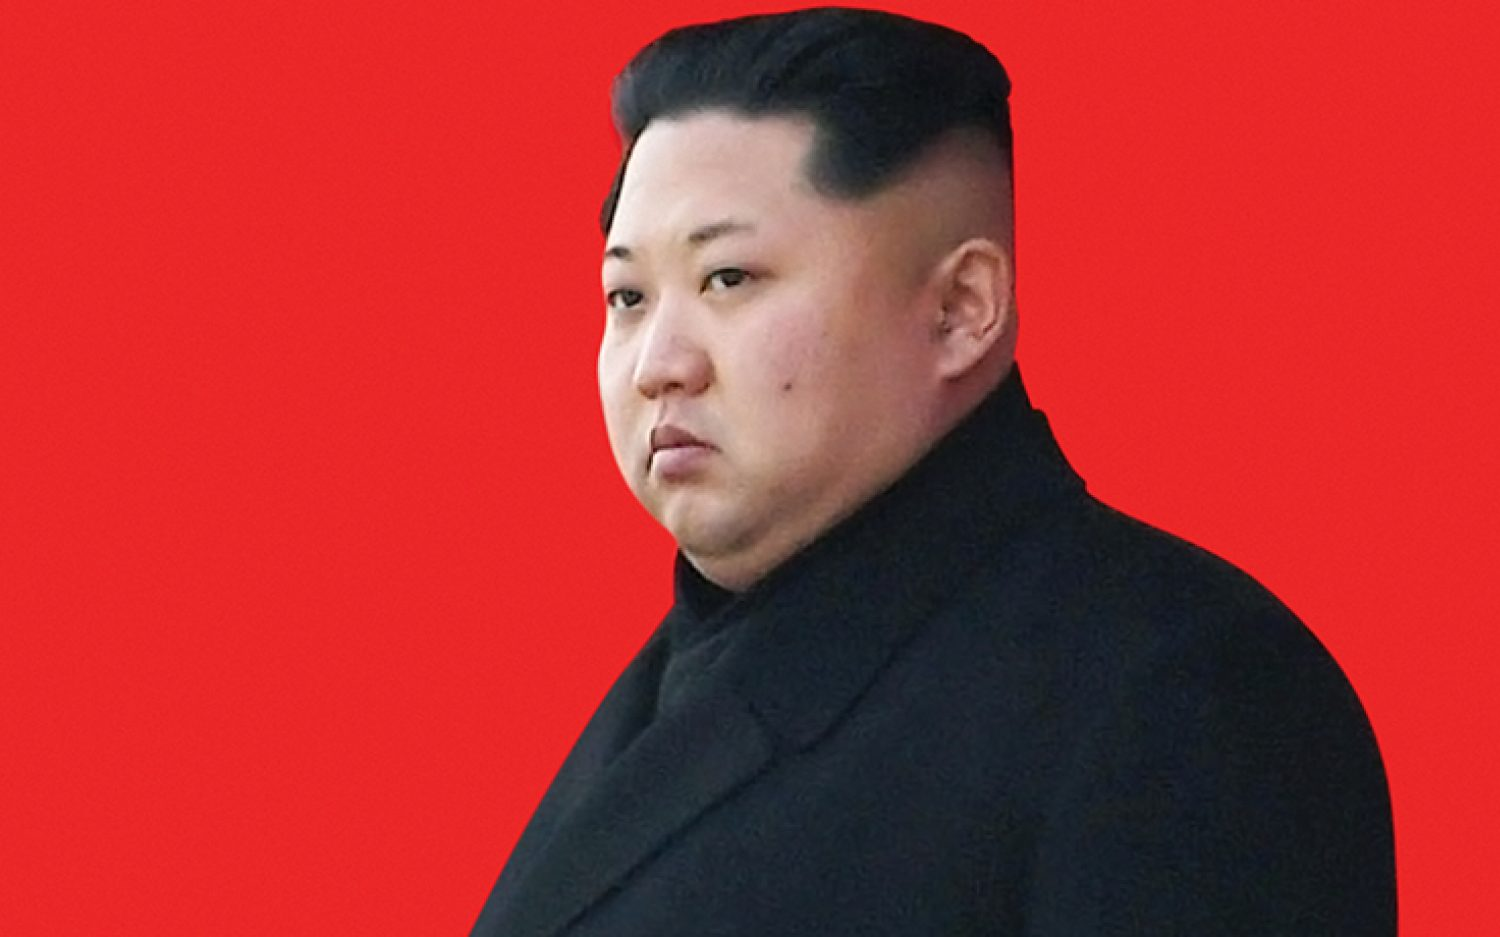 The campaign against Kim